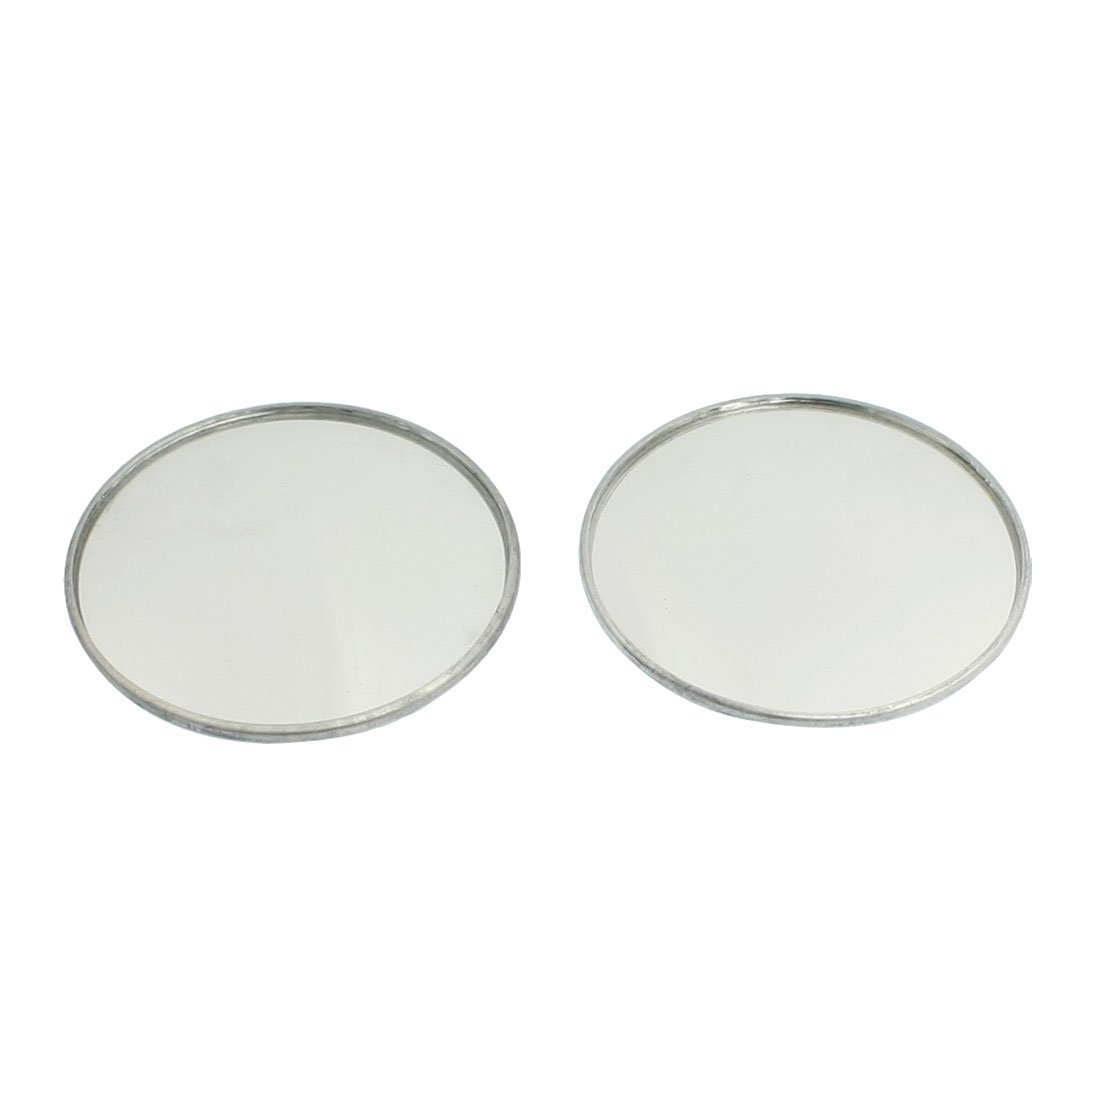 SODIAL(R) 2 x 1.9' Dia Round Metal Casing Convex Car Side Rearview Blind Spot Mirror